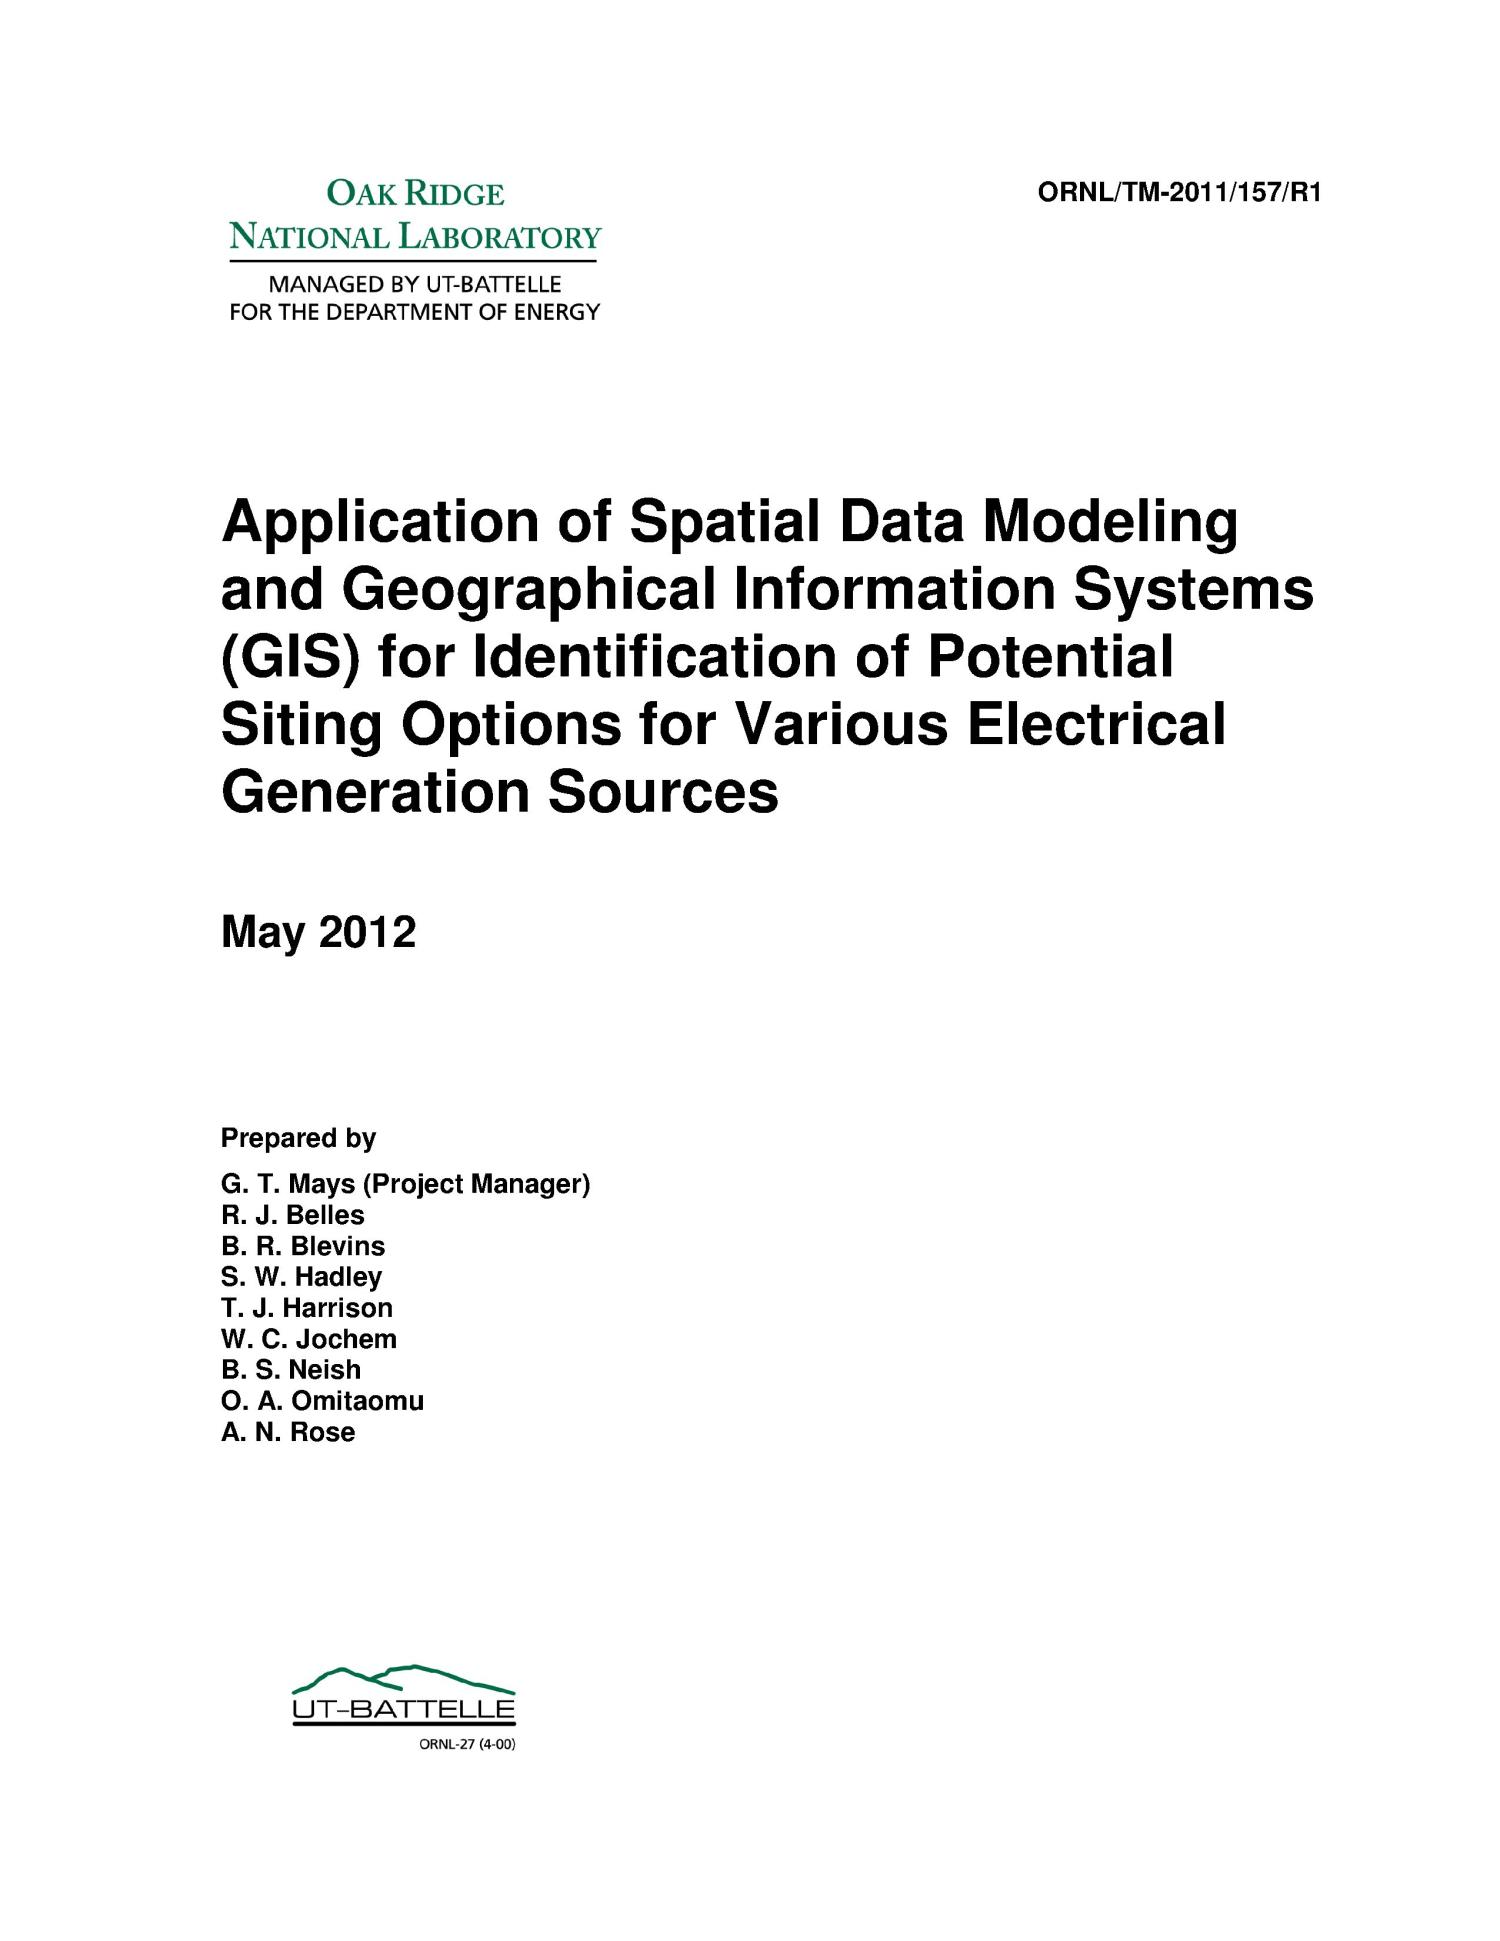 Application of Spatial Data Modeling and Geographical Information Systems (GIS) for Identification of Potential Siting Options for Various Electrical Generation Sources                                                                                                      [Sequence #]: 1 of 173